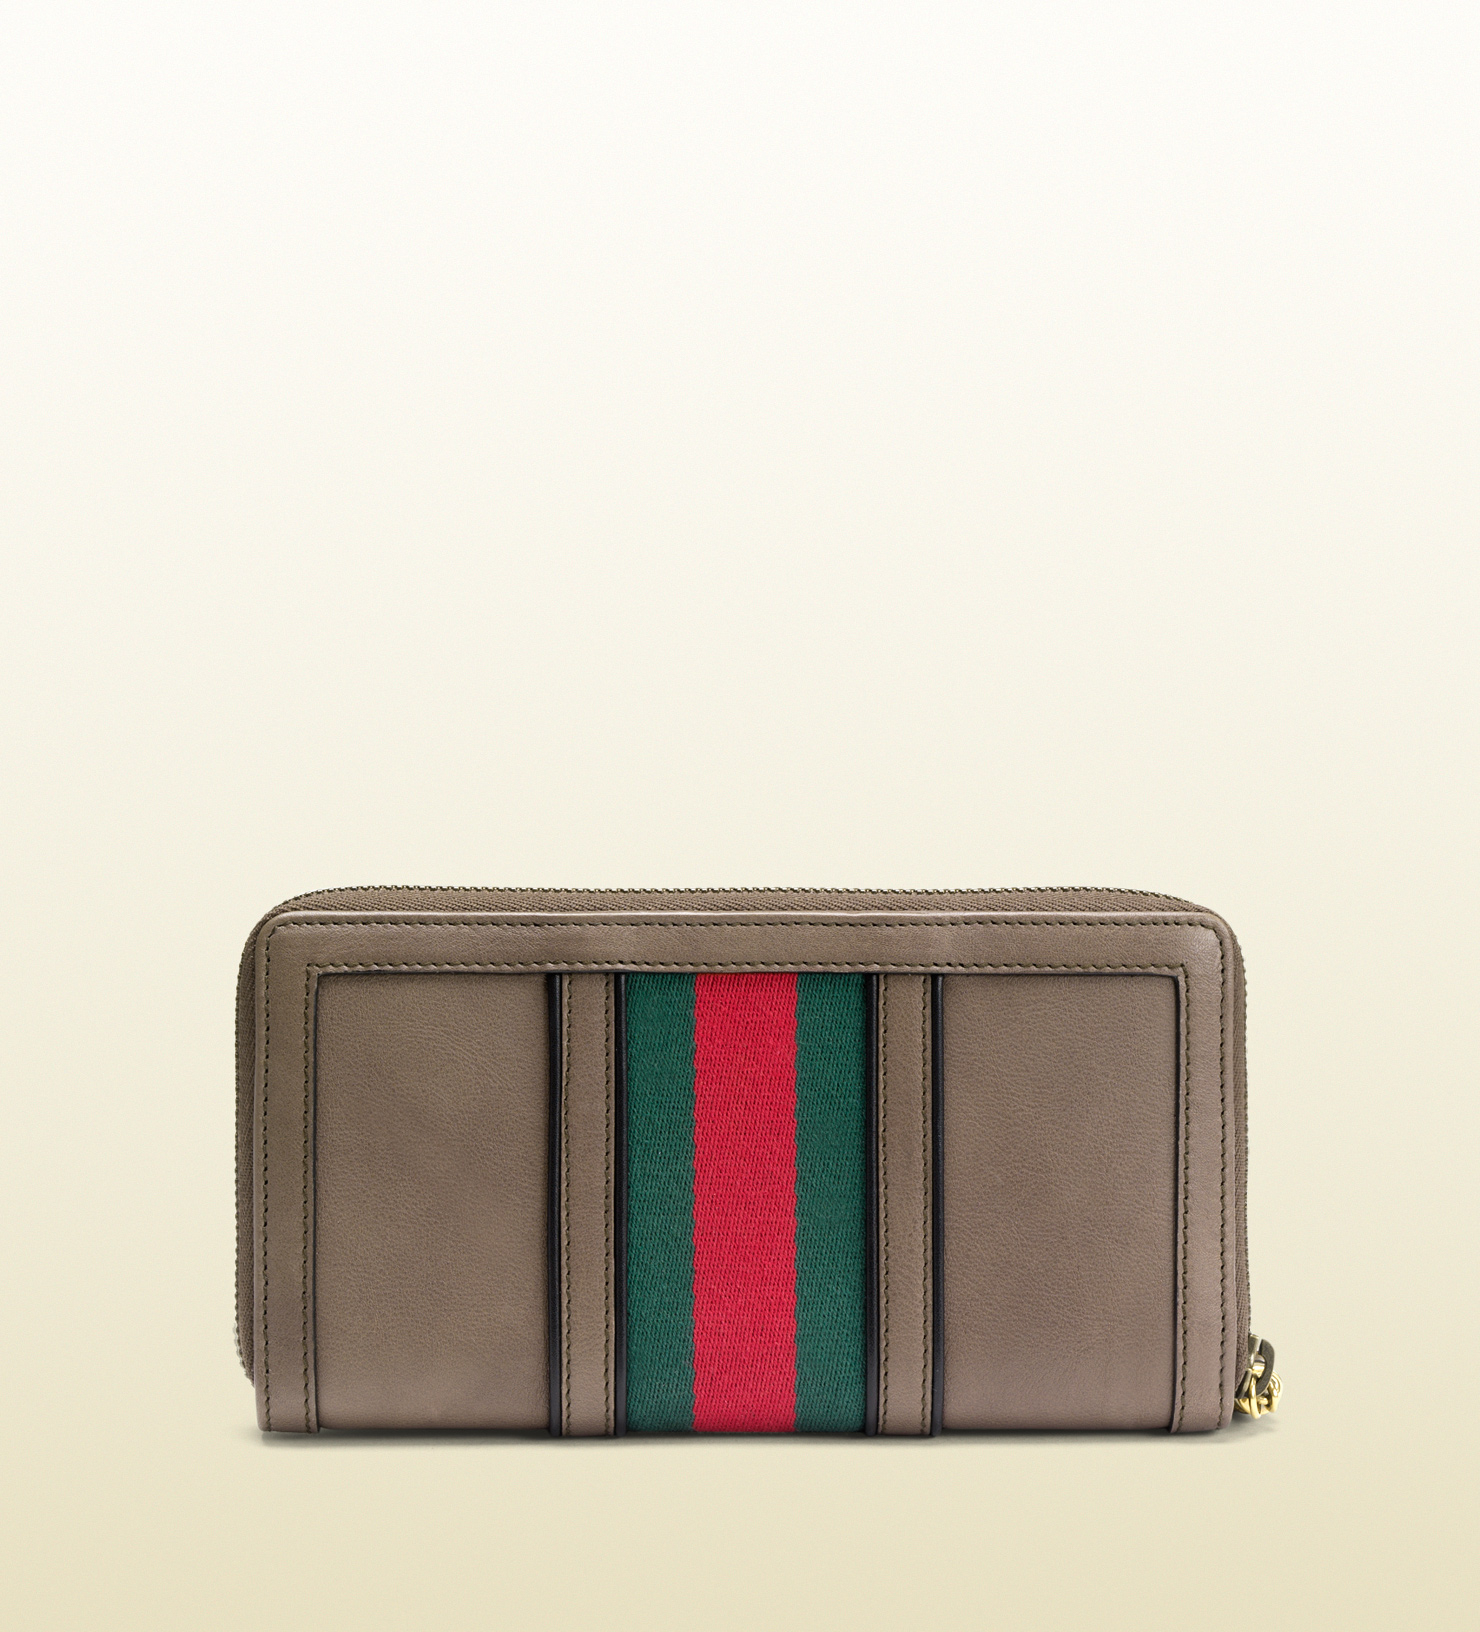 704bab643ed7a1 Lyst - Gucci Rania Original Gg Canvas Zip Around Wallet in Gray for Men